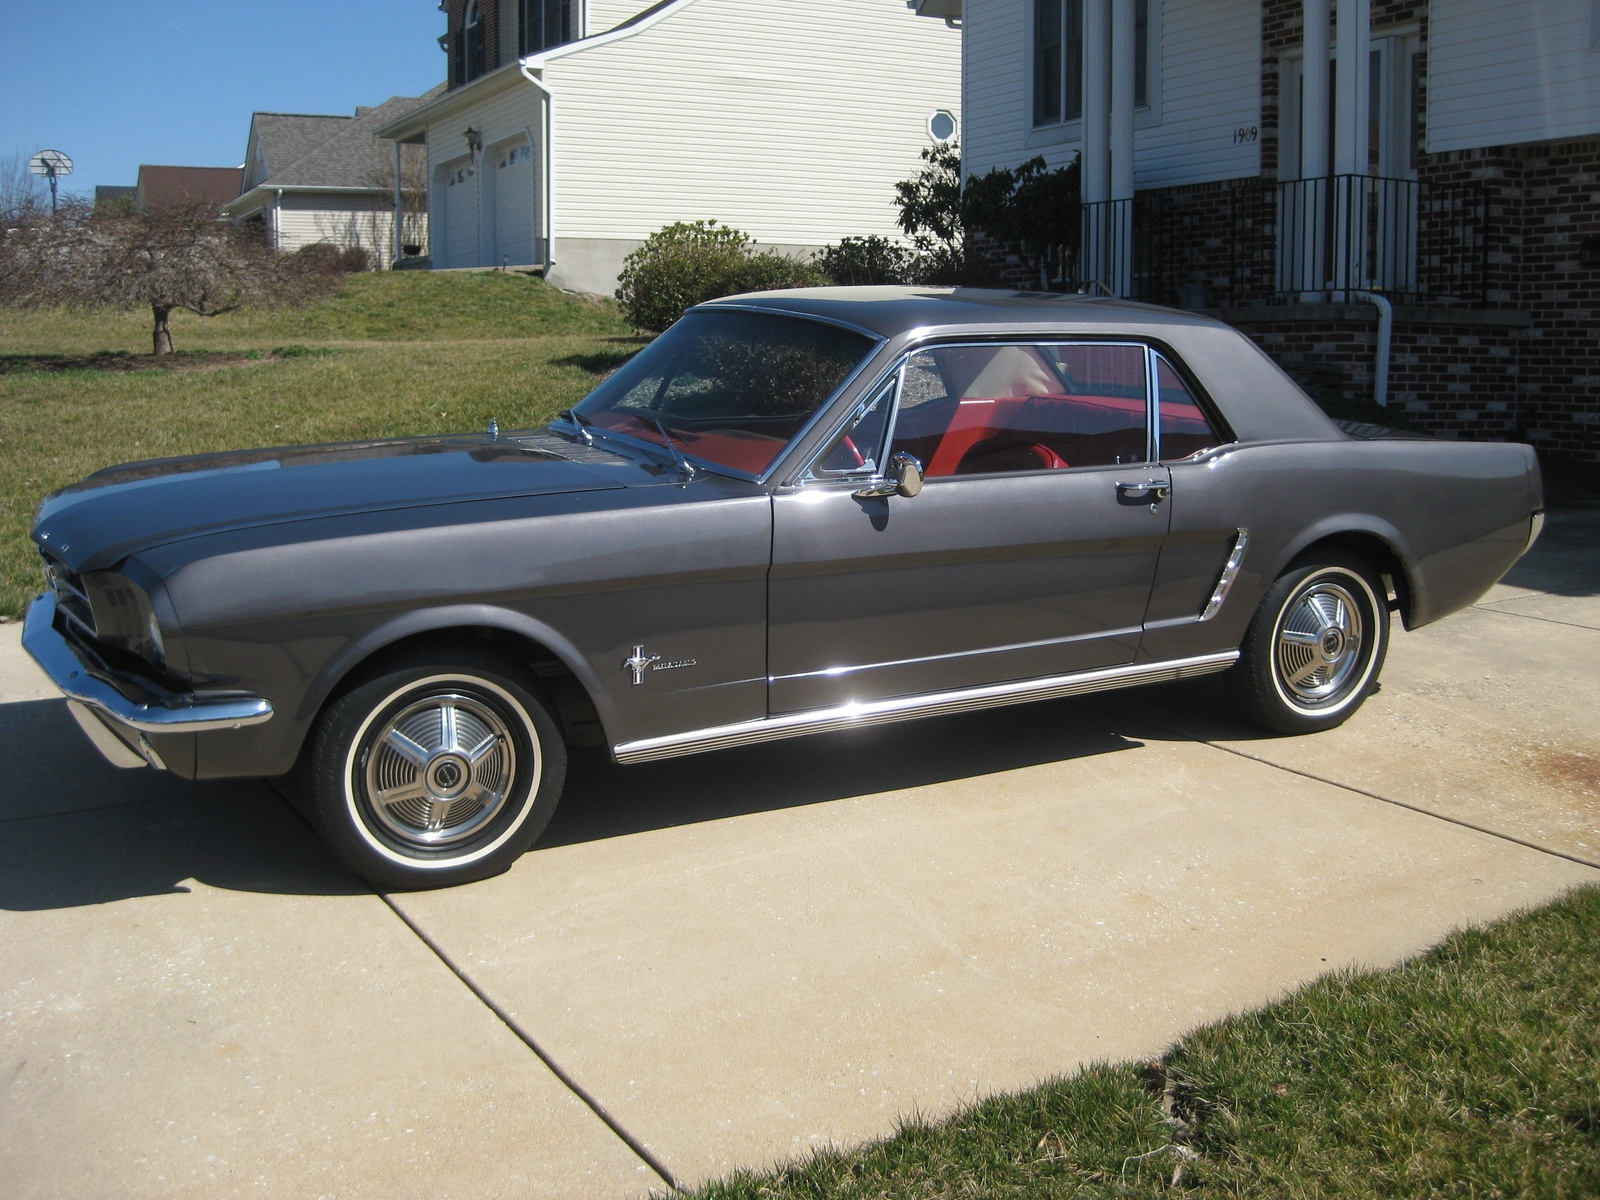 1964 Ford Mustang Exterior Pictures Cargurus